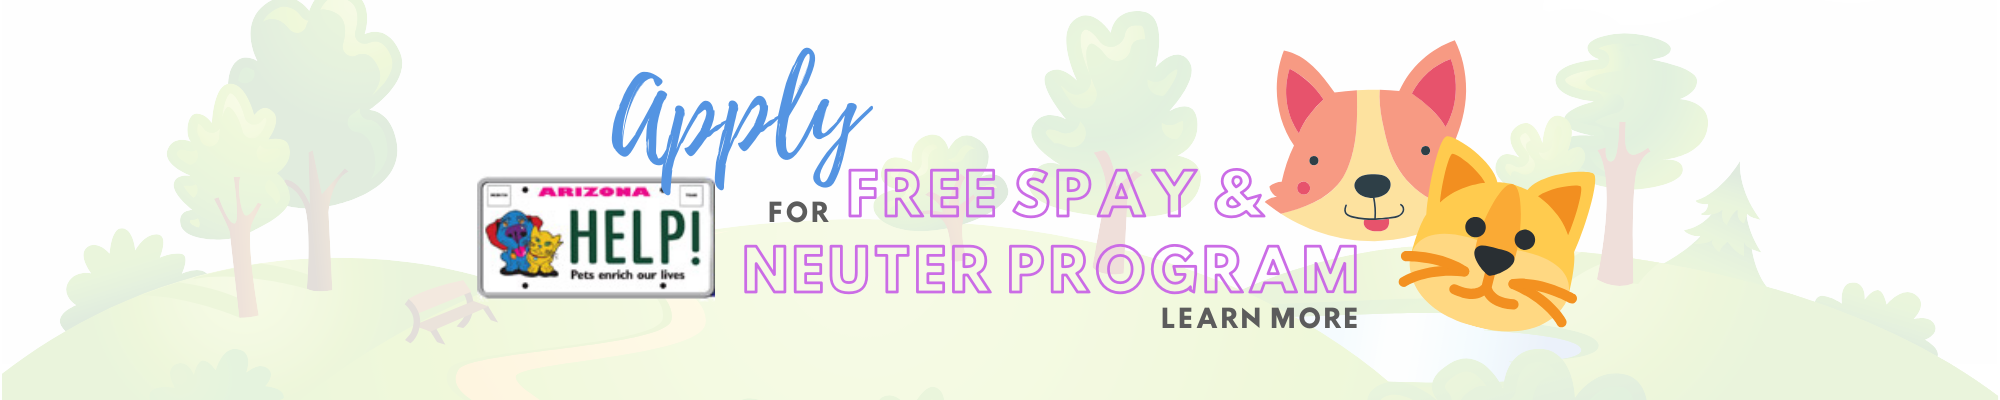 Spay and Neuter Learn More